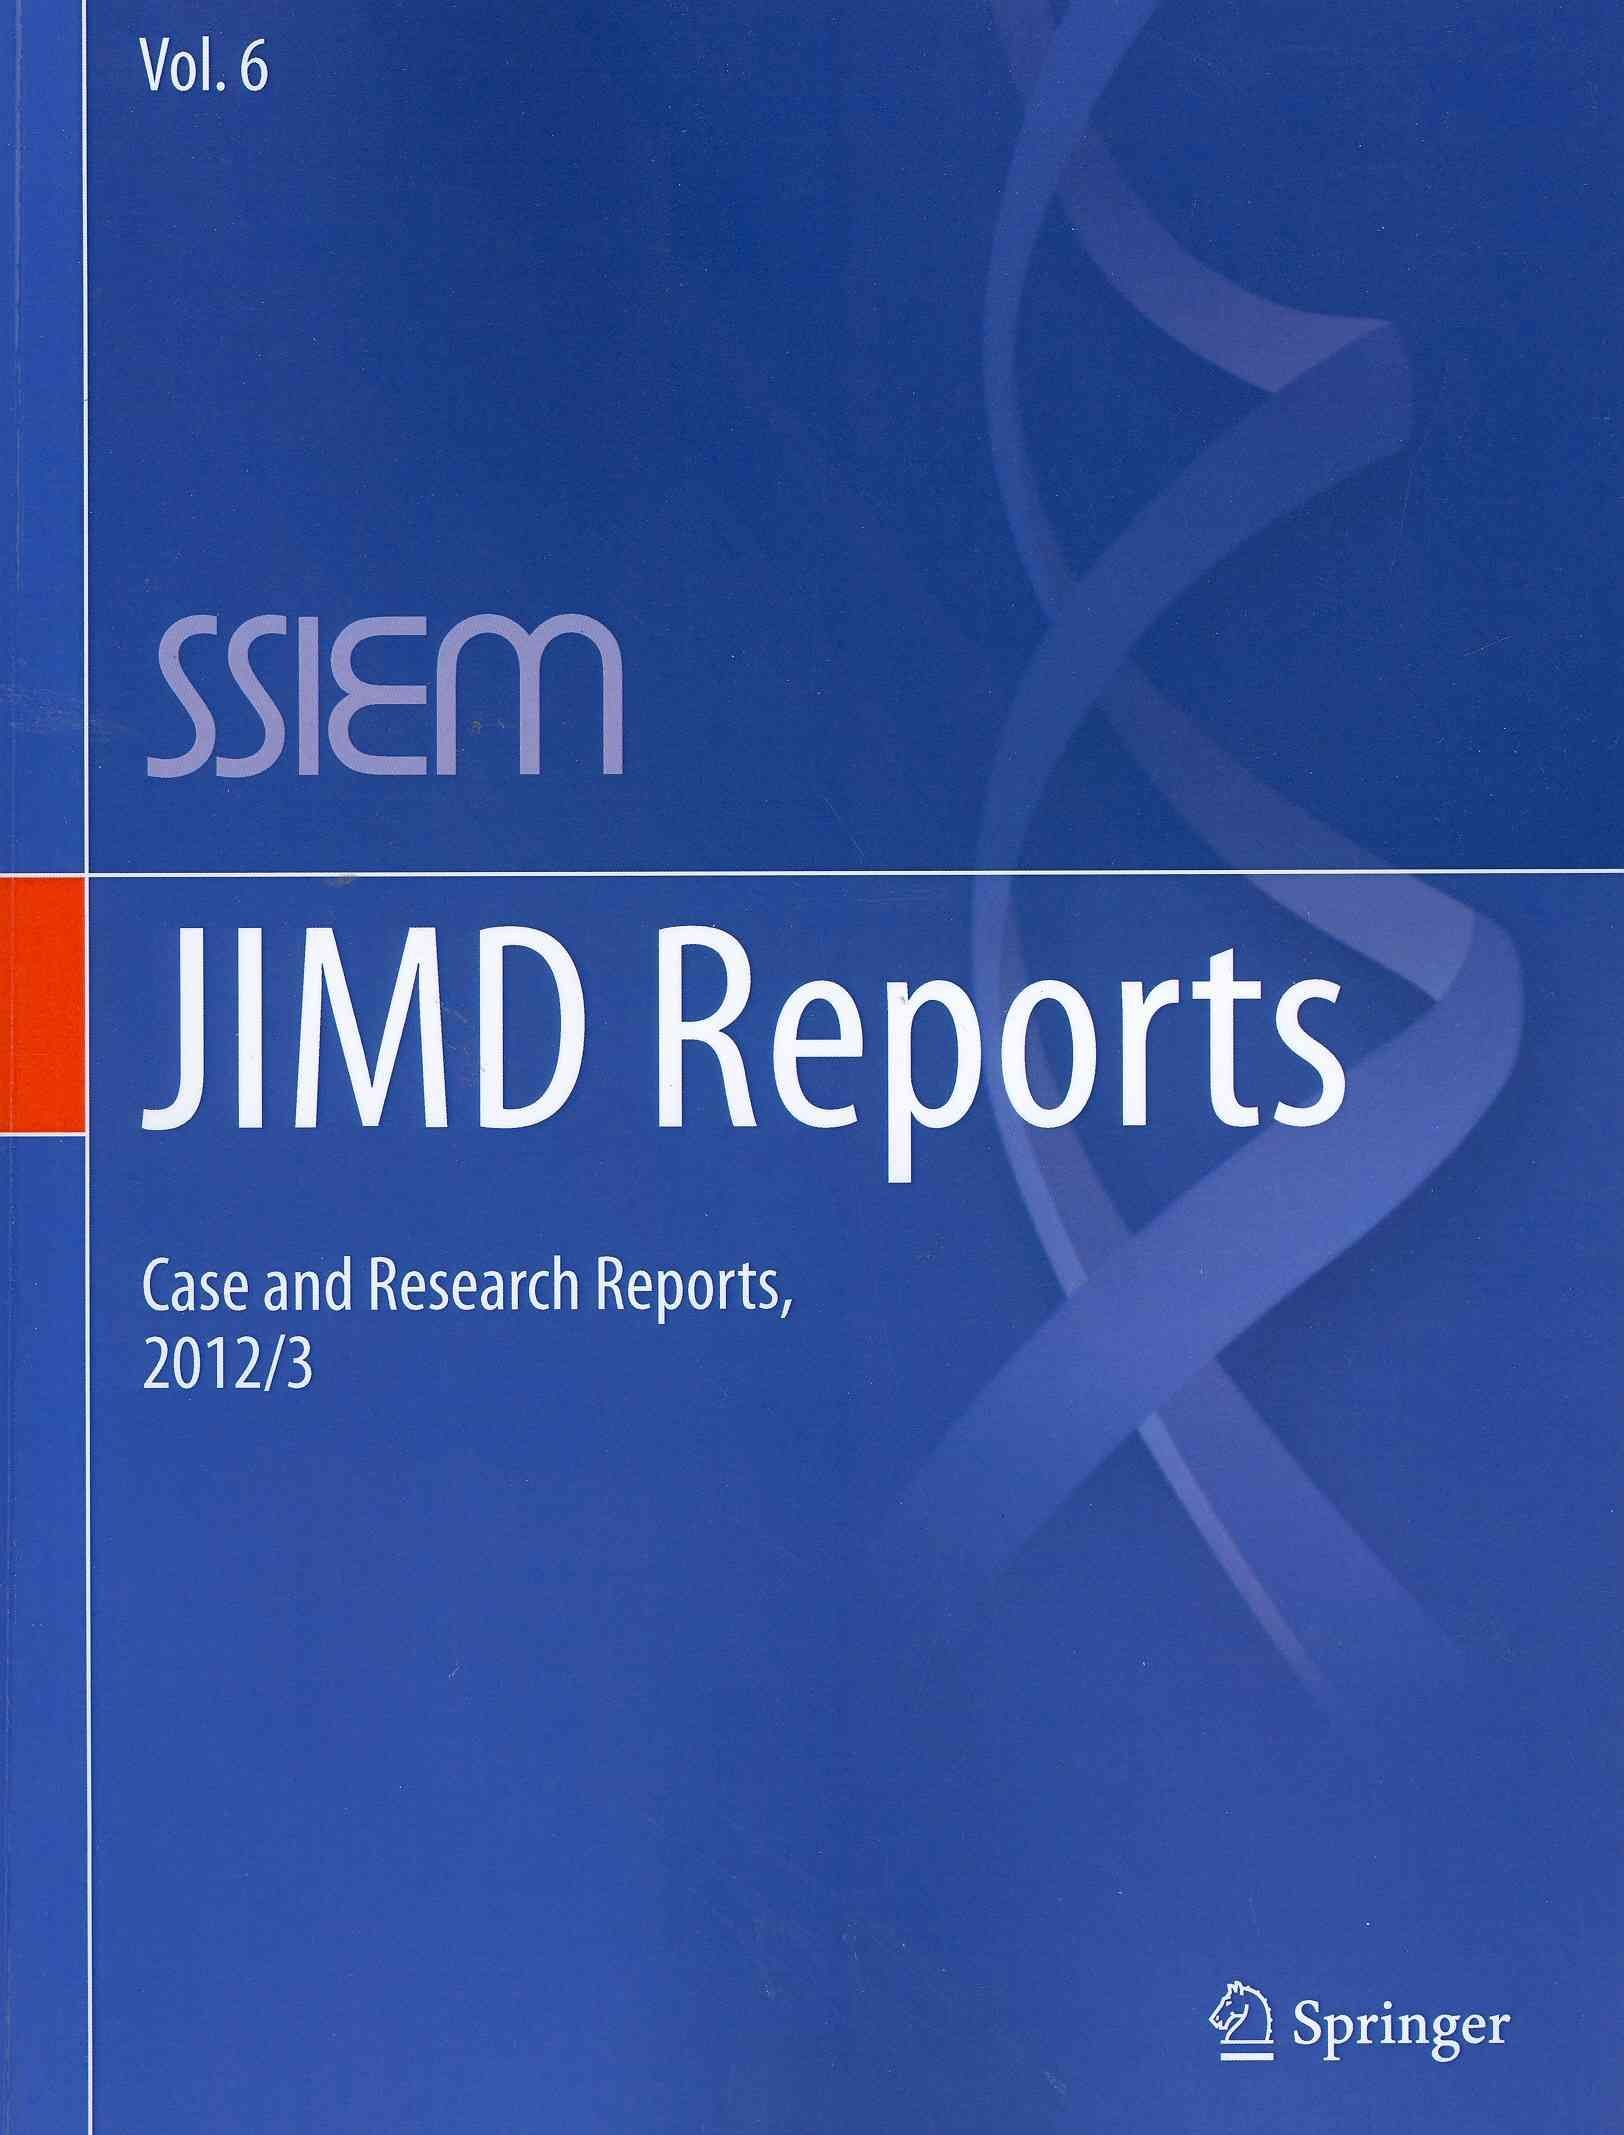 JIMD Reports - Case and Research Reports 2012/13 - Society for the Study of Inborn Errors of Metabolism